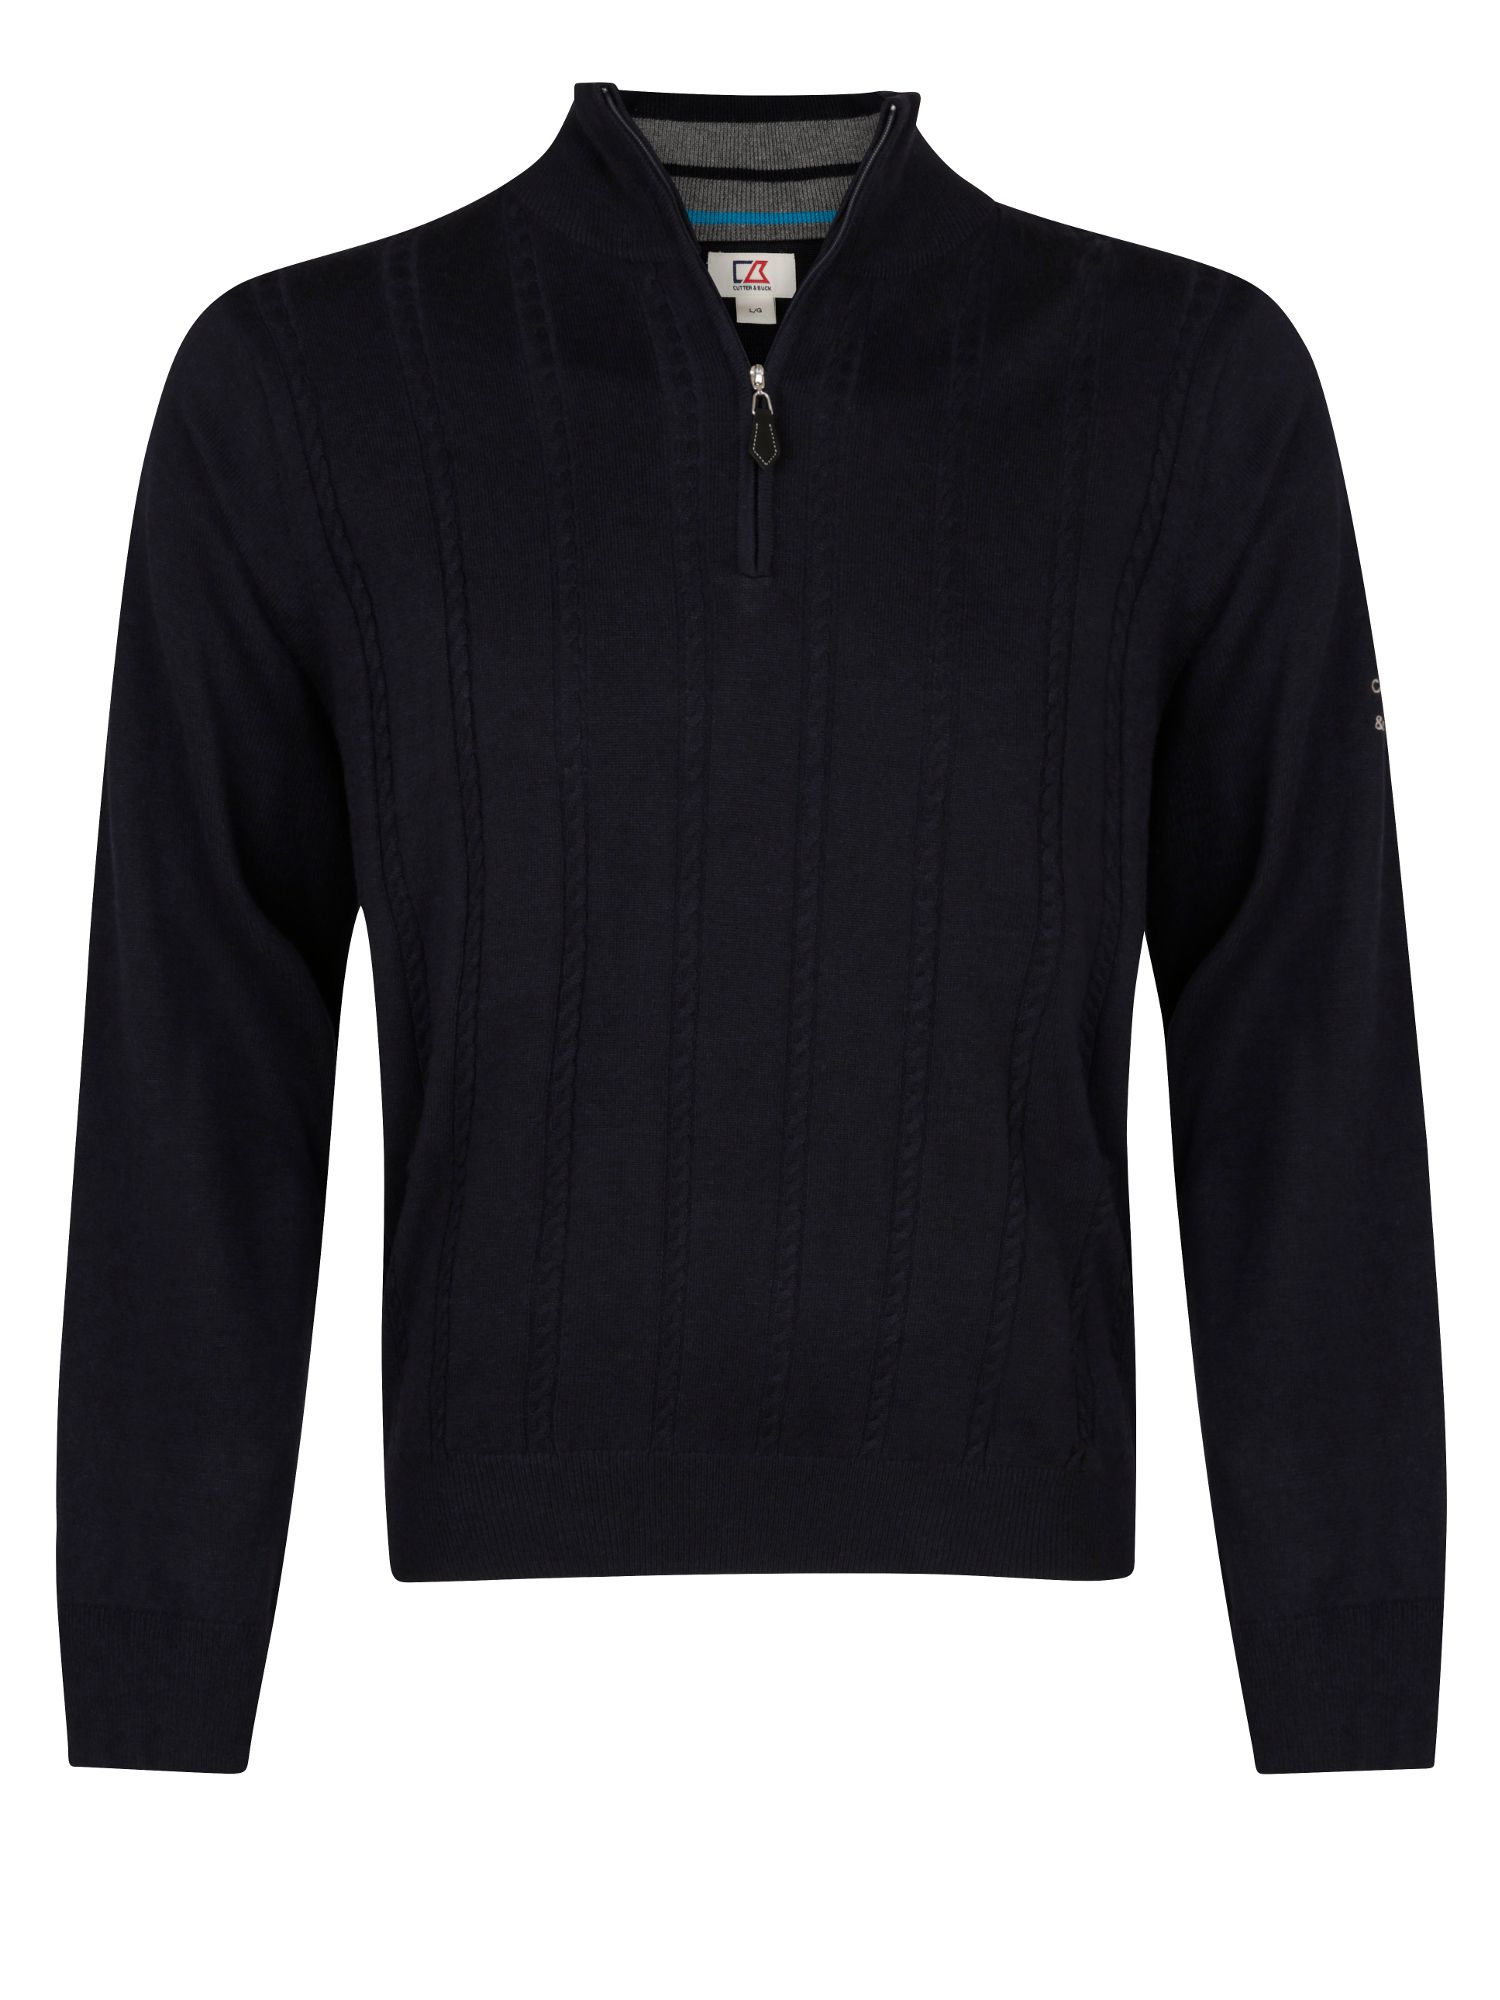 Cutter and Buck Men's Cutter and Buck Cable zip neck sweater, Navy